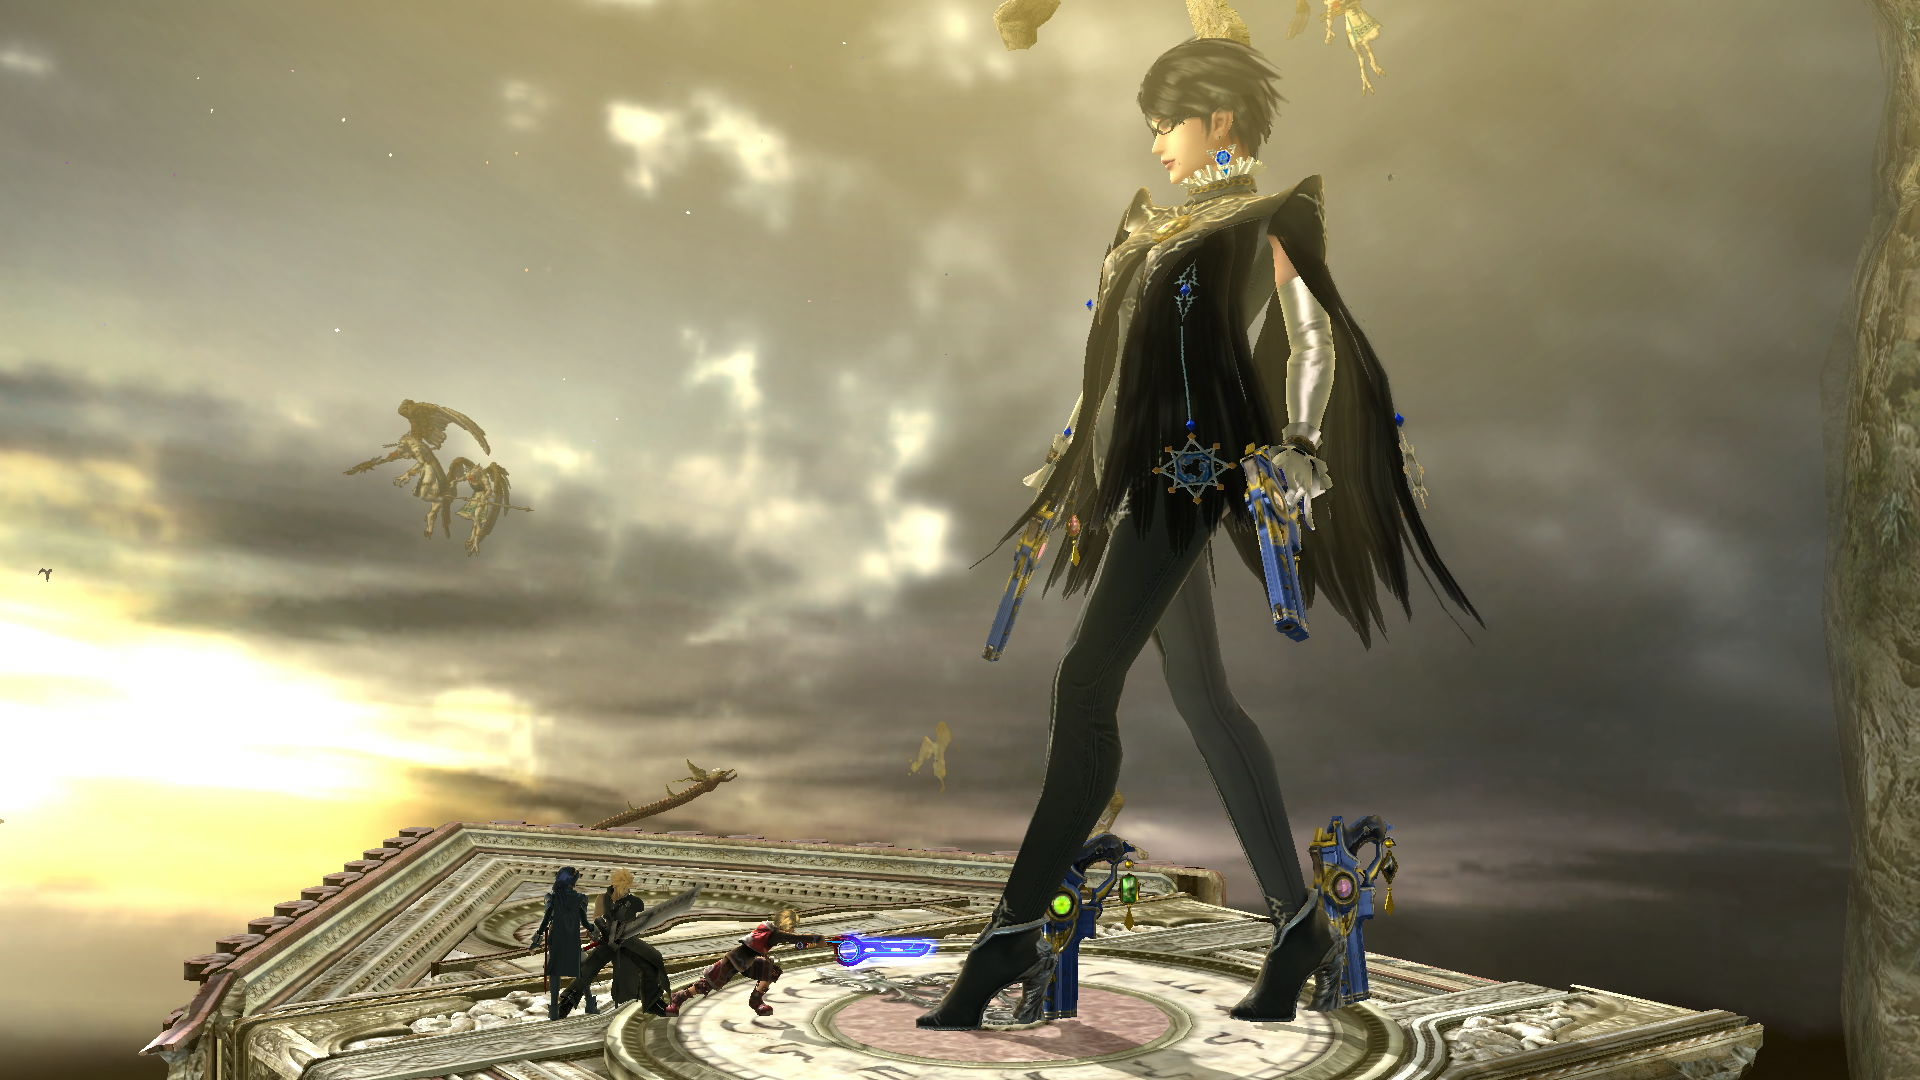 Super Smash Bros. 4 - GTS Bayonetta